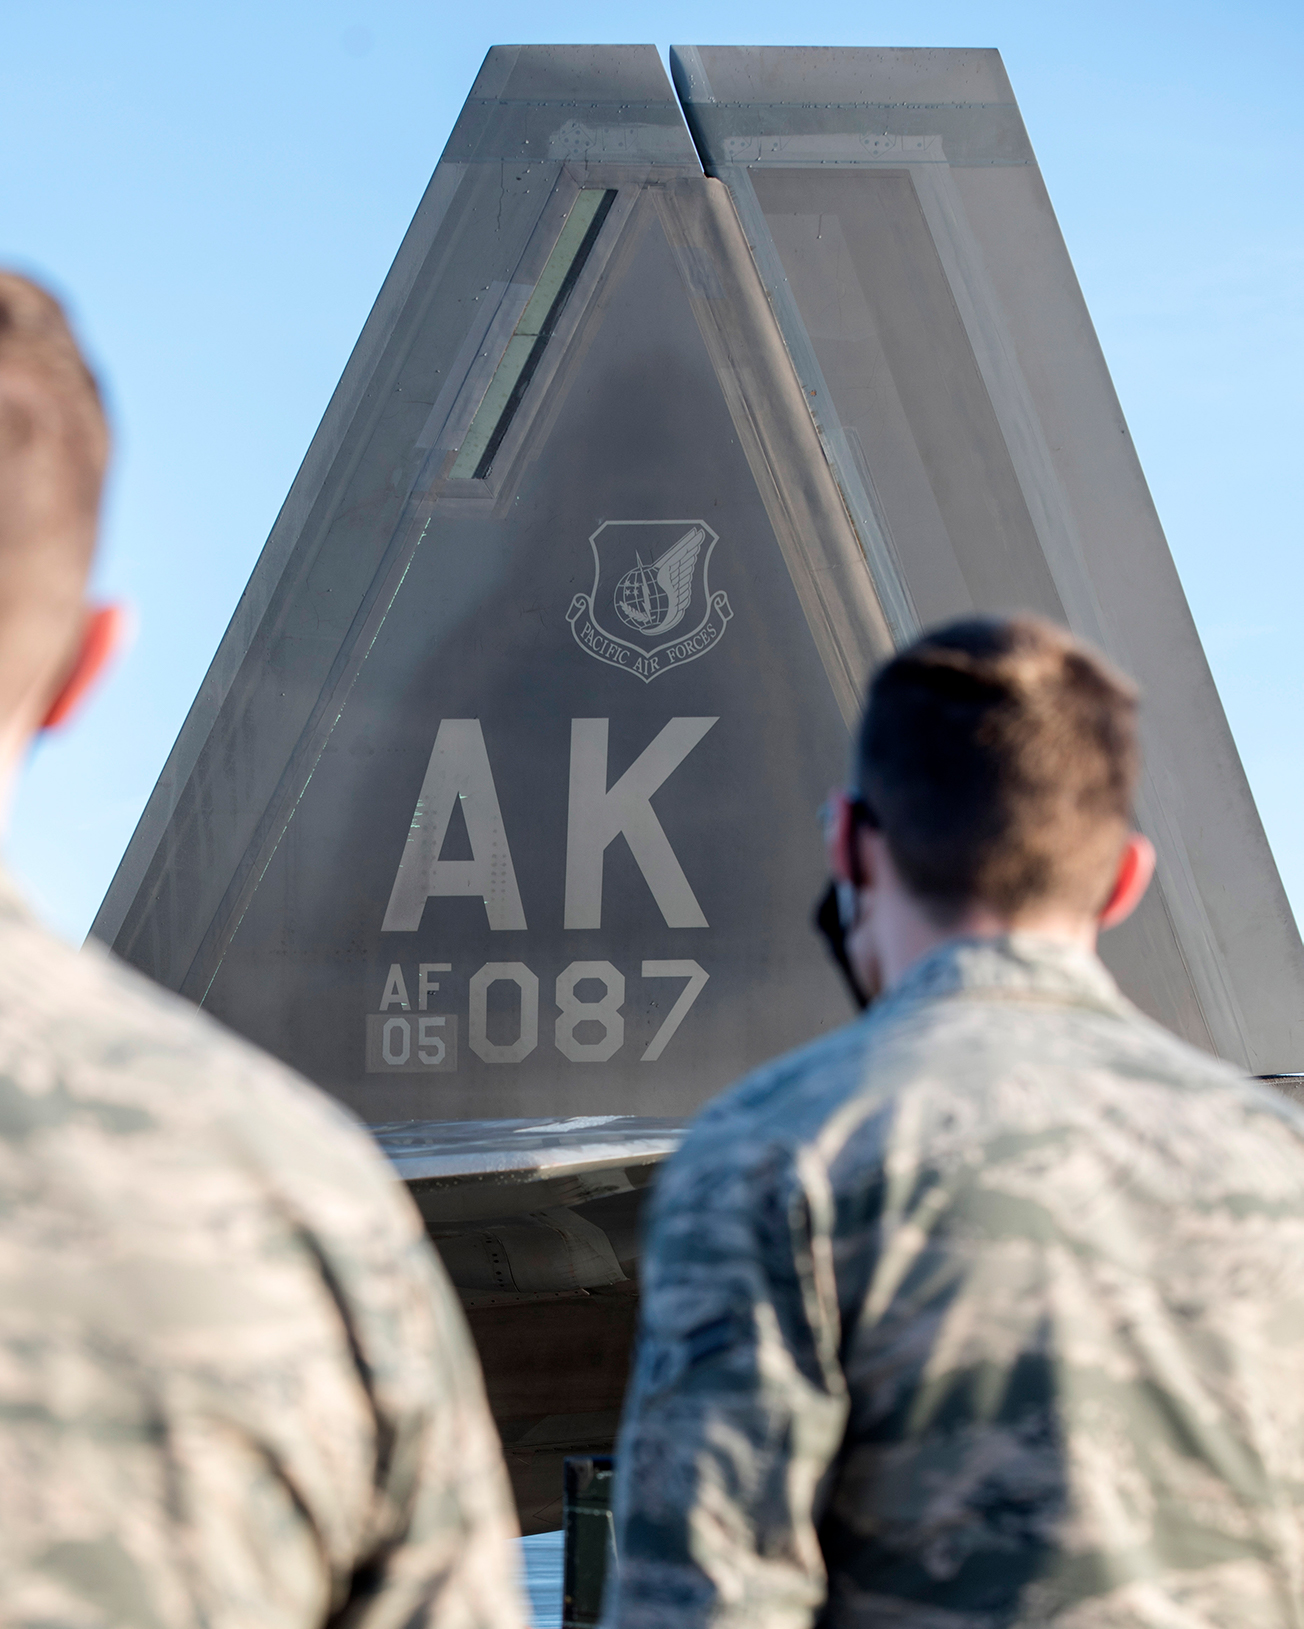 U.S. Airmen with the 673d Communications Squadron attend a 90th Fighter Squadron immersion at Joint Base Elmendorf-Richardson, Alaska, Sept. 29, 2020. The tour provided the Airmen with a behind-the-scenes experience of the operations in the 90th FS and showcased the 90th FS's mission that JBER's Airmen support. Leadership of the 90th FS hopes to expand the program in the future.